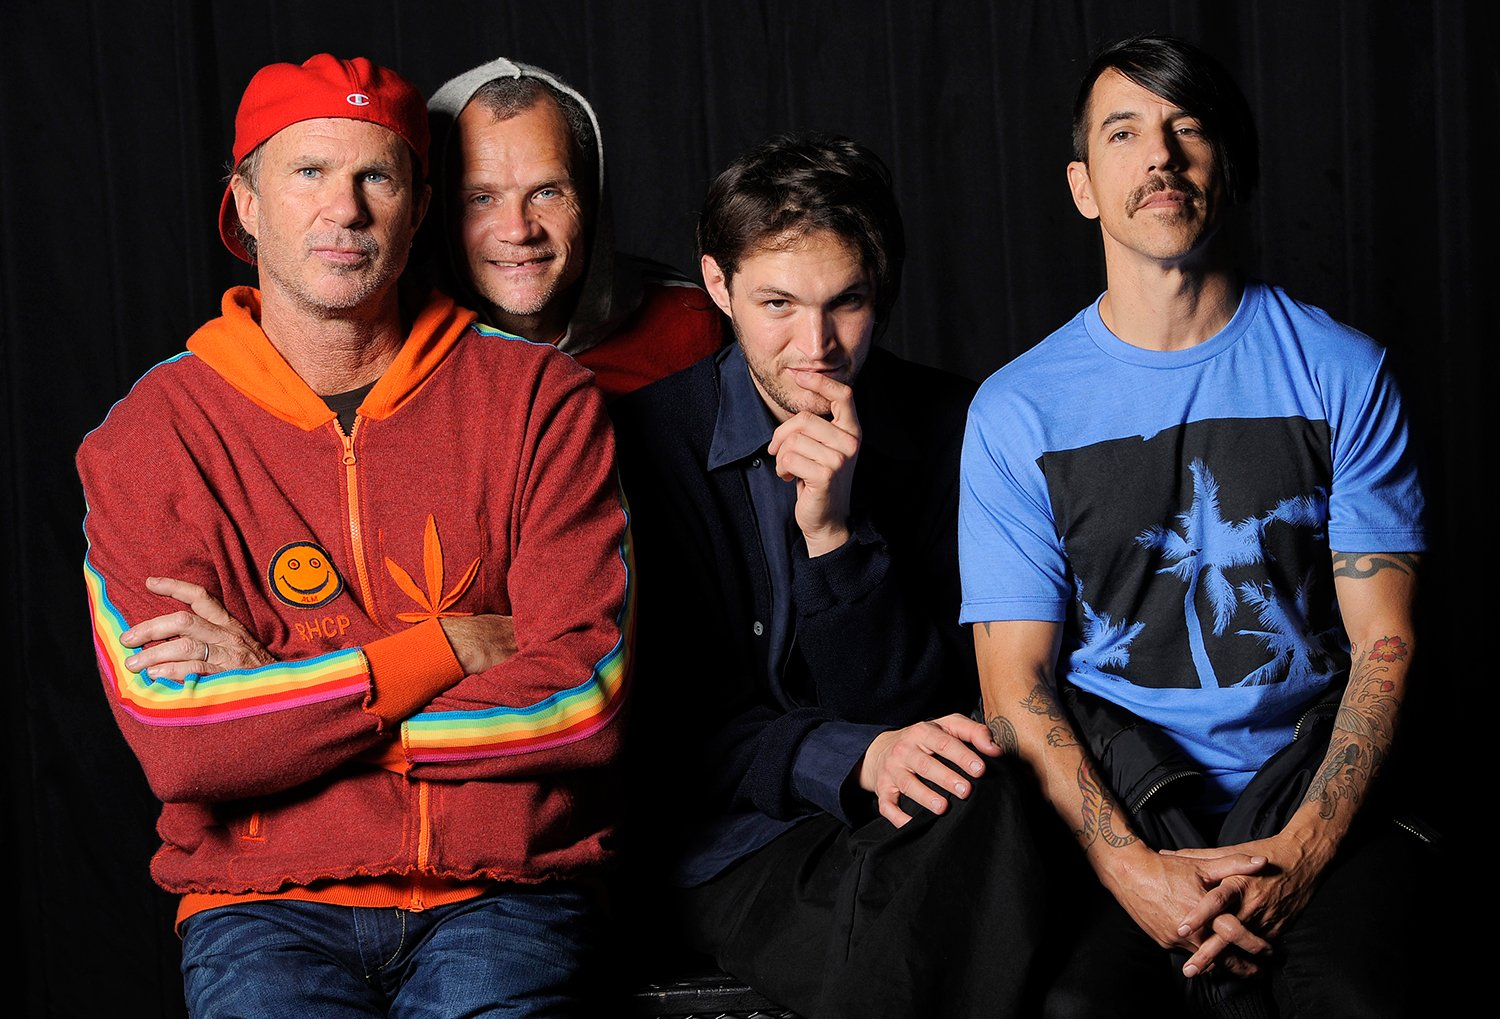 See Red Hot Chili Peppers' acoustic cover of Chris Cornell's 'Seasons' https://t.co/p99hBWVllk https://t.co/soQEFwaaYf